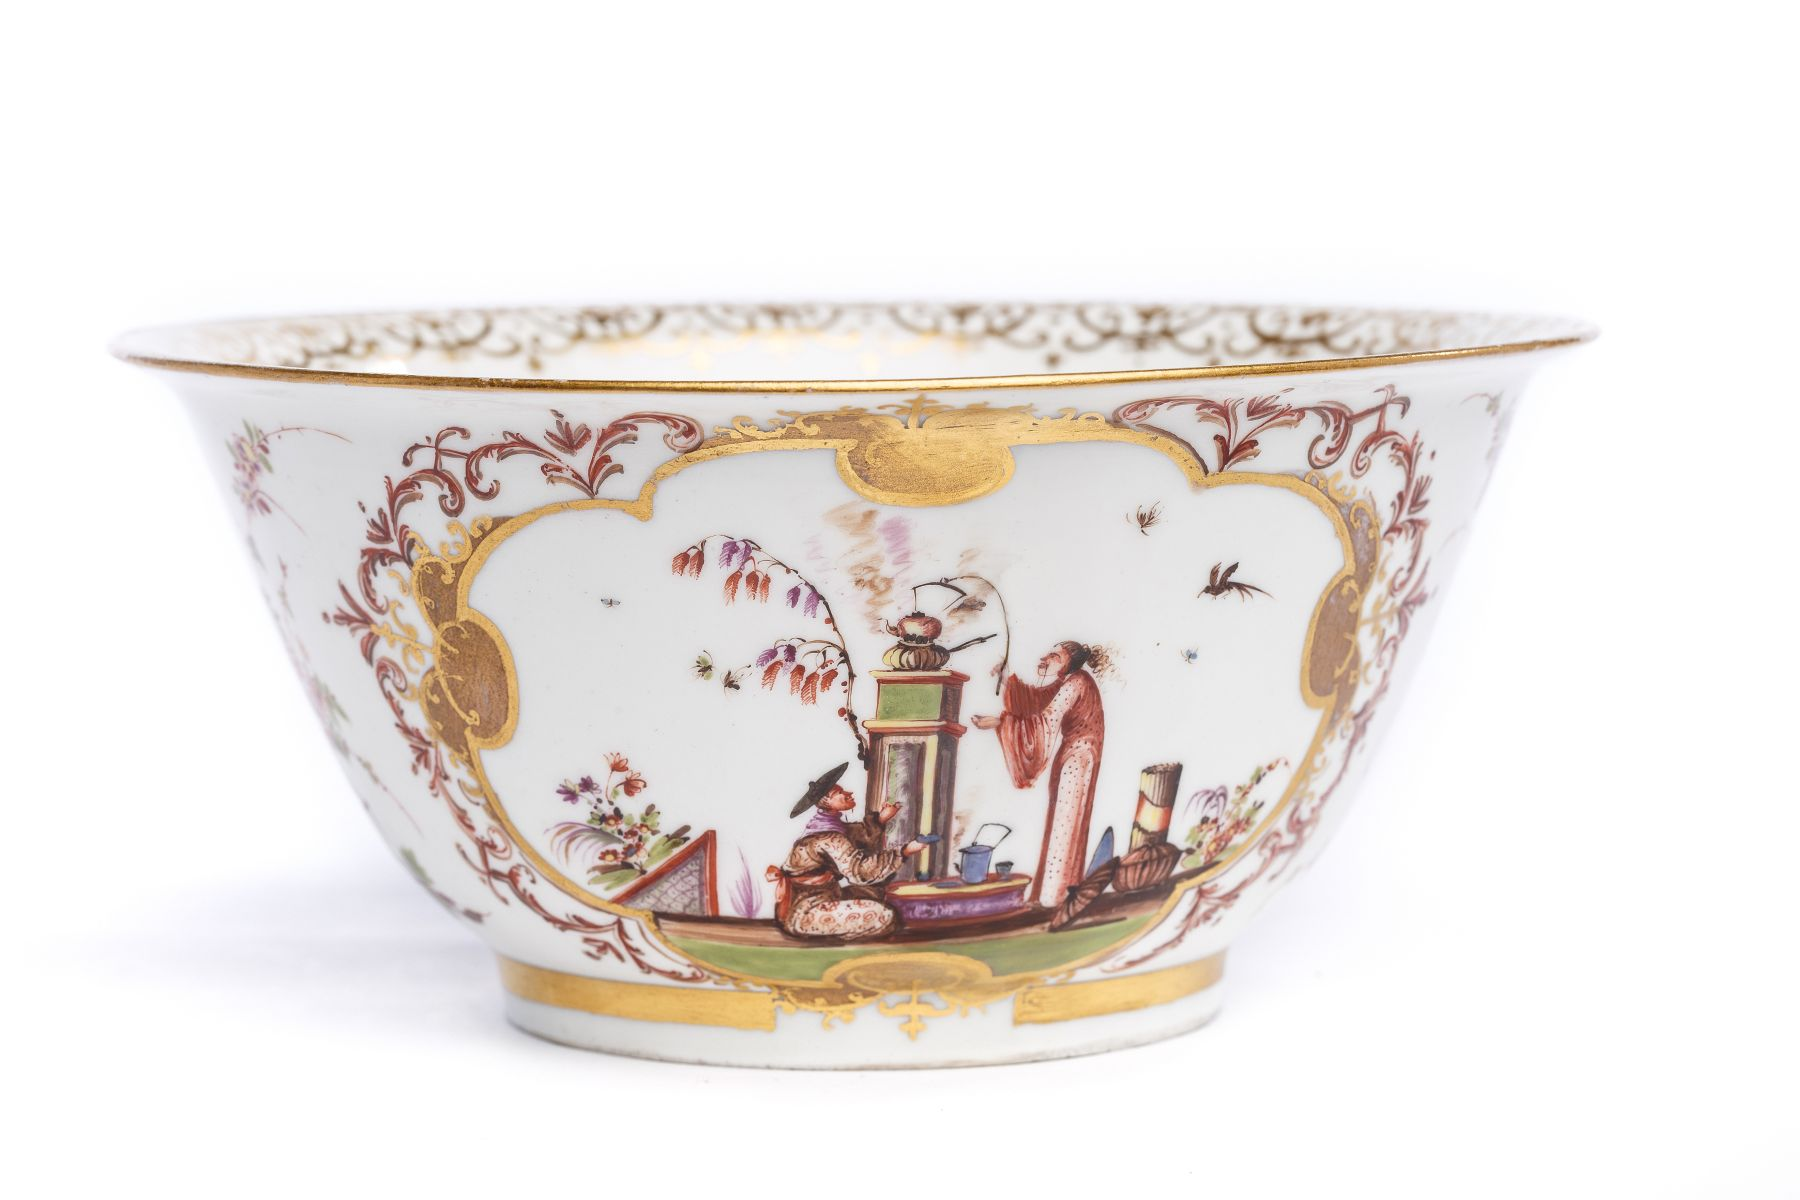 "#3 Rare bowl with ""Chinoiserie"" scenes, Meissen 1723/25 